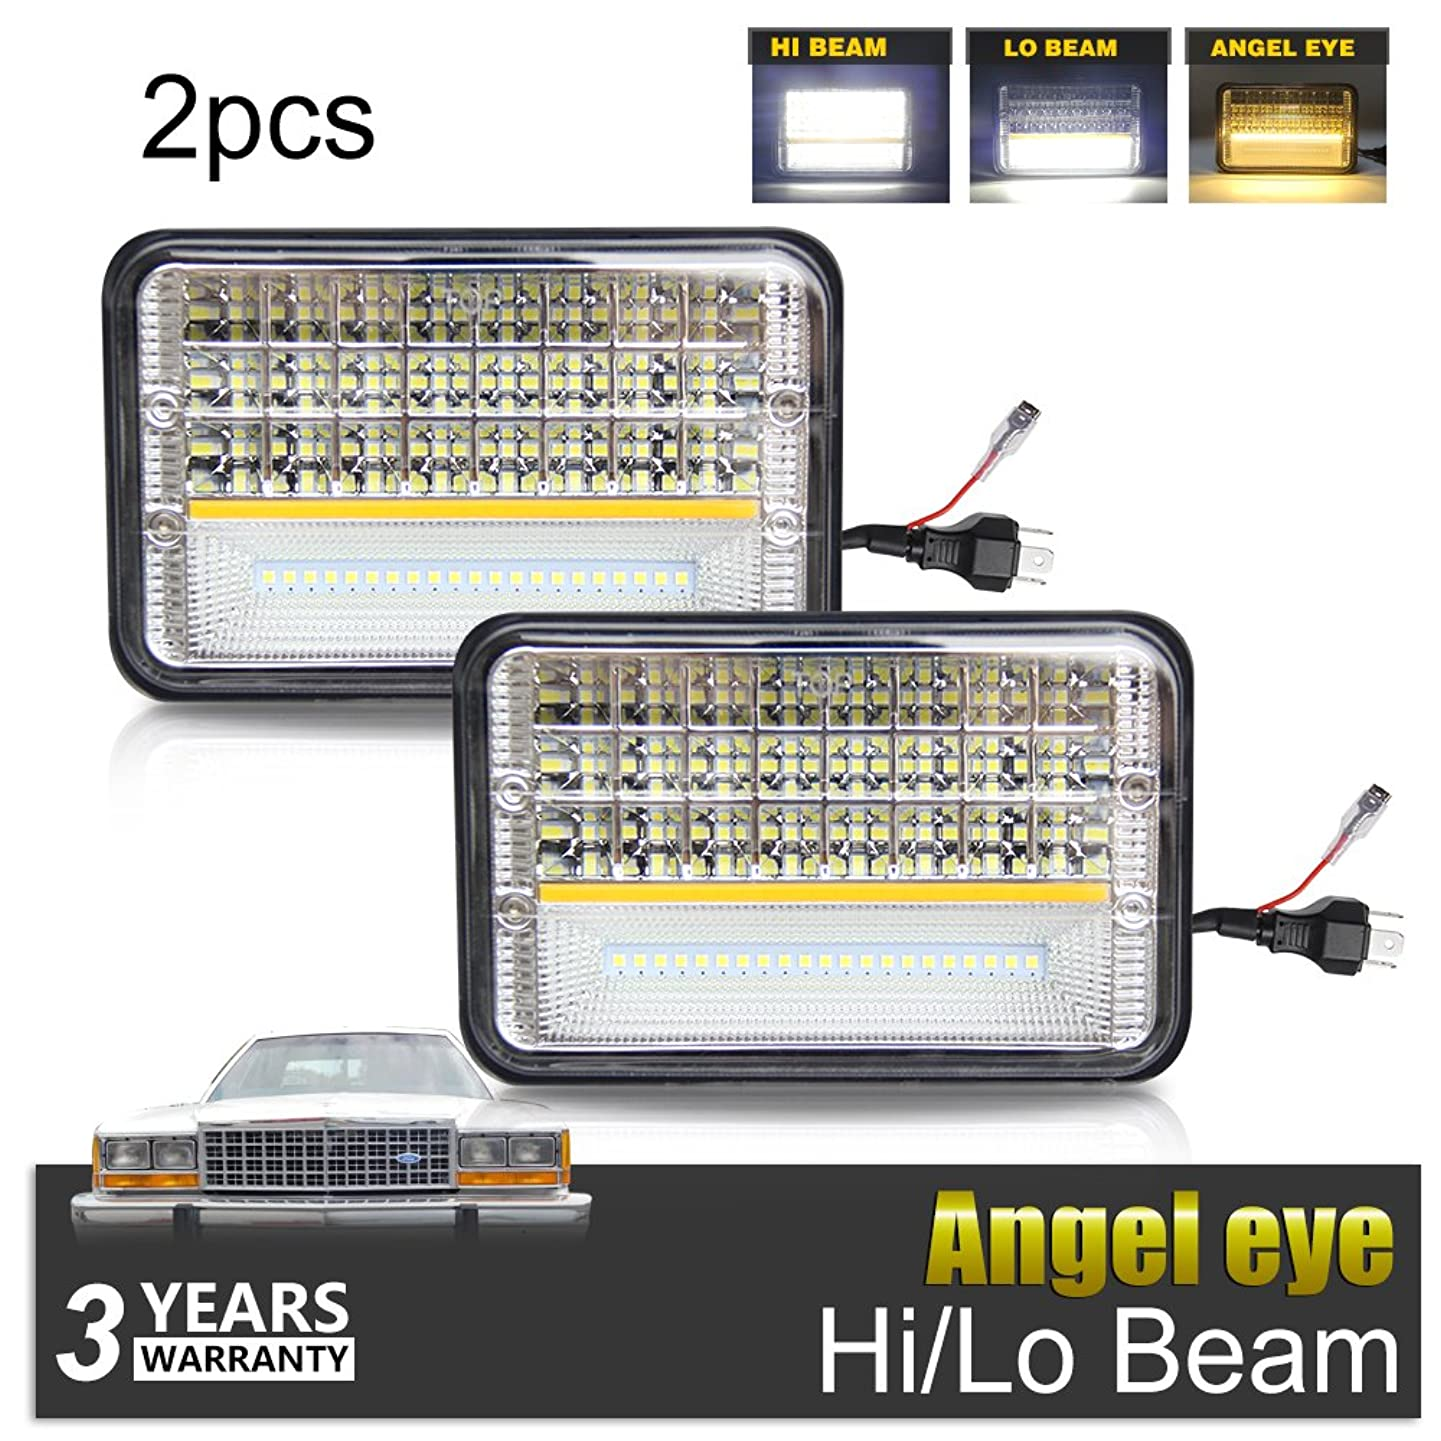 LED Rectangular Headlight 4x6 inch Projector 2PCS Sealed Beam Replacement Hi/Lo Beam DRL Fits Headlamp Bulb for Kenworth Freightliner, 1002A-Y-2pcs, Colight